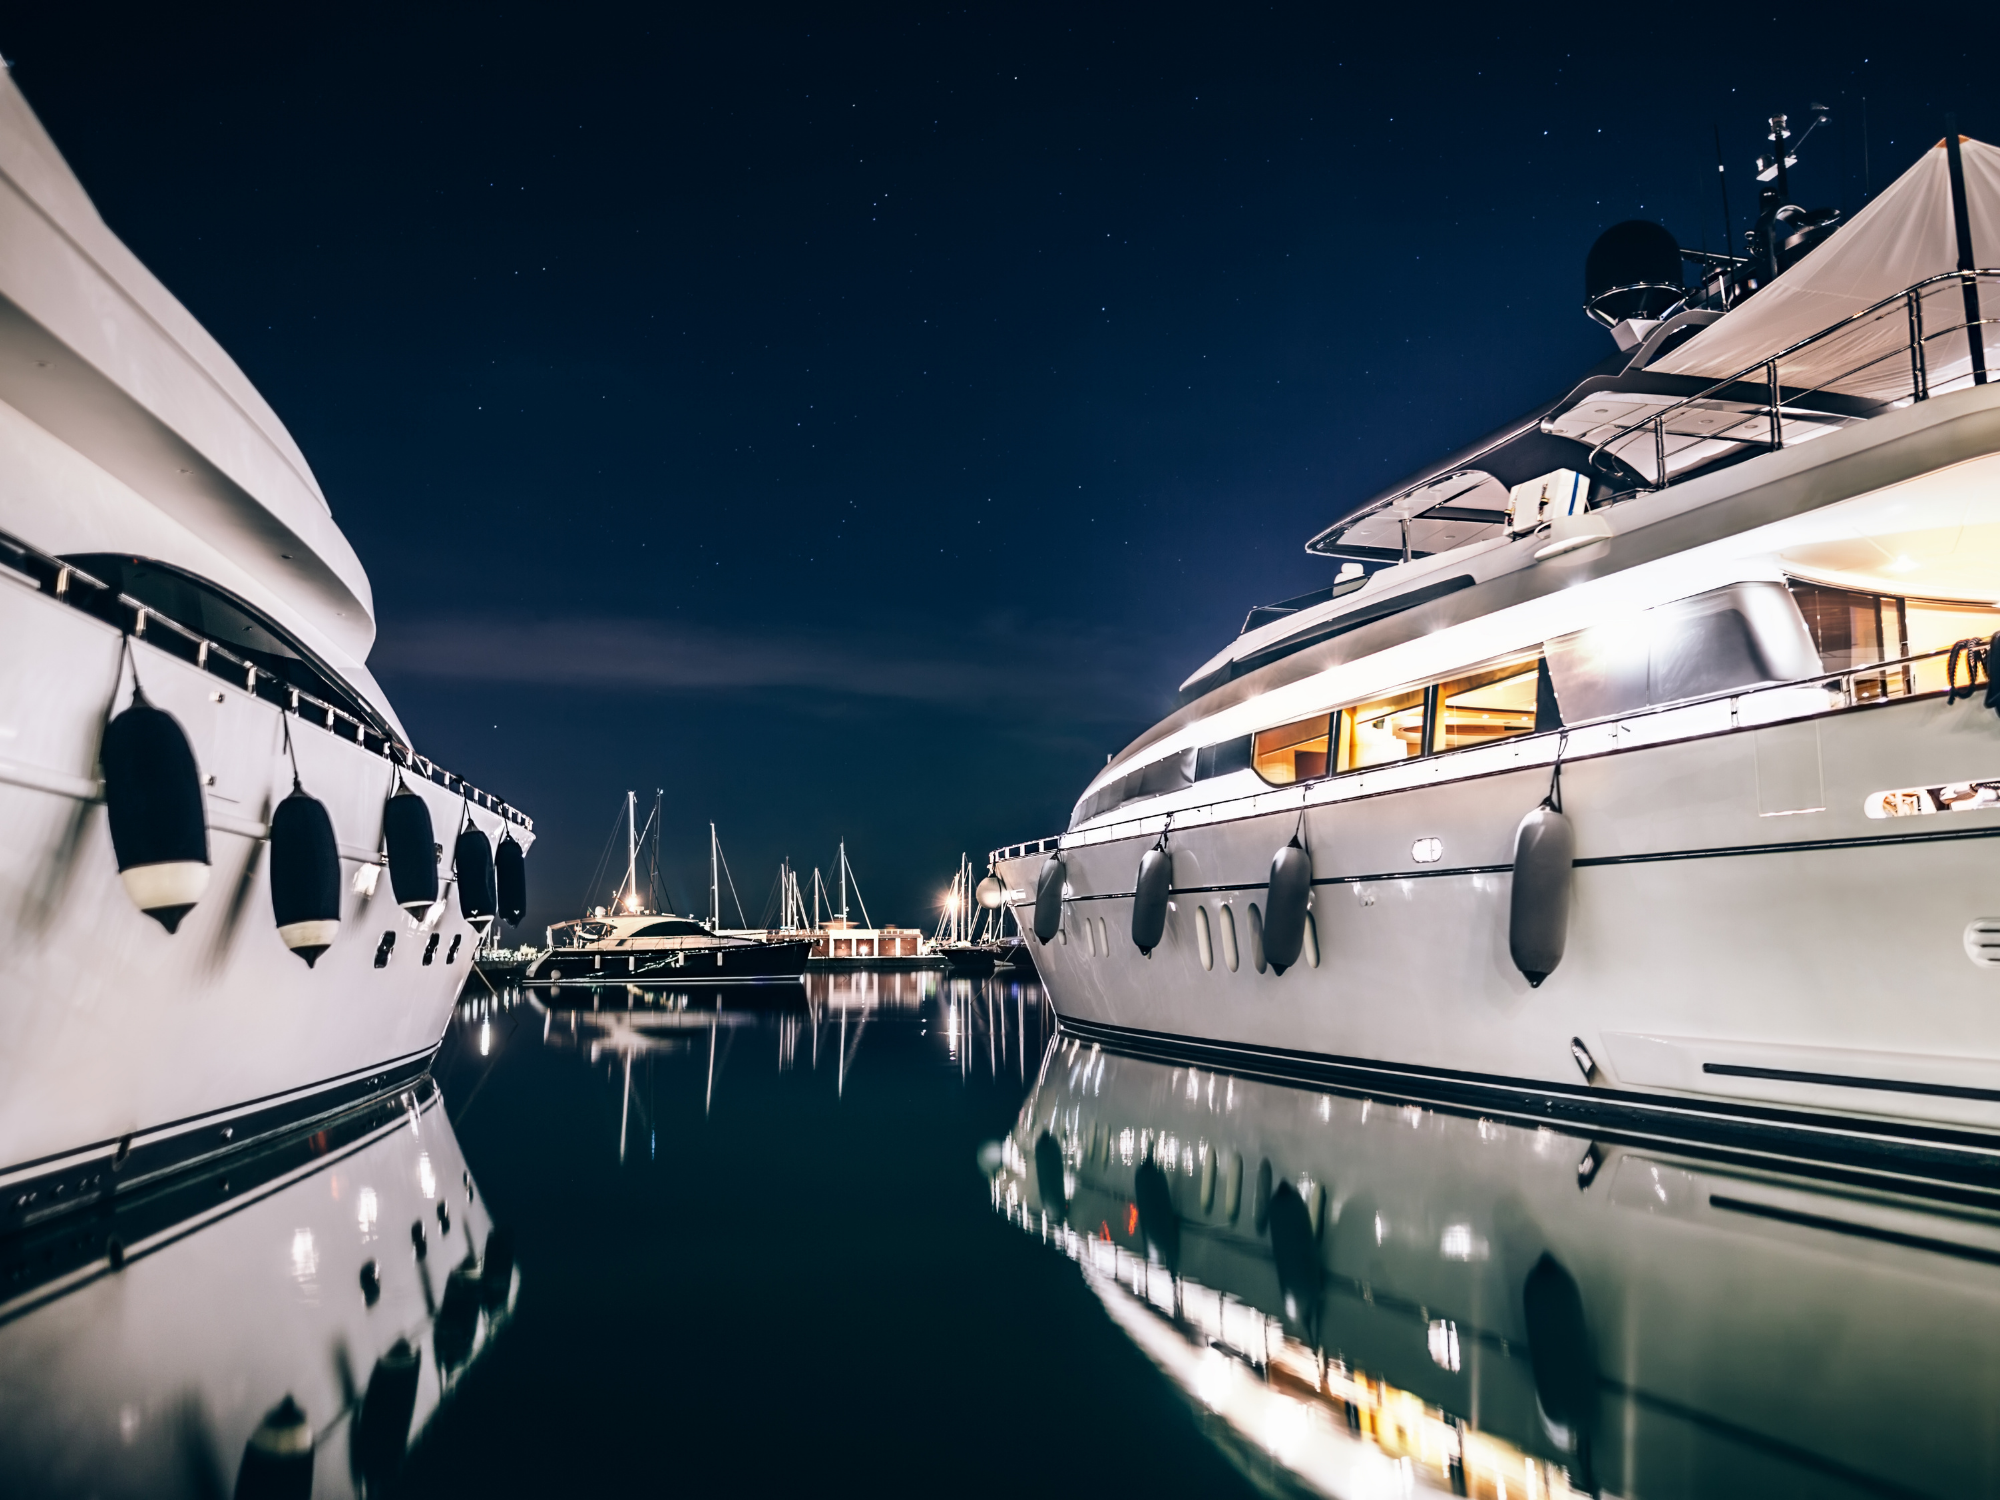 Two large yachts docked side by side with various types of boat lights shown